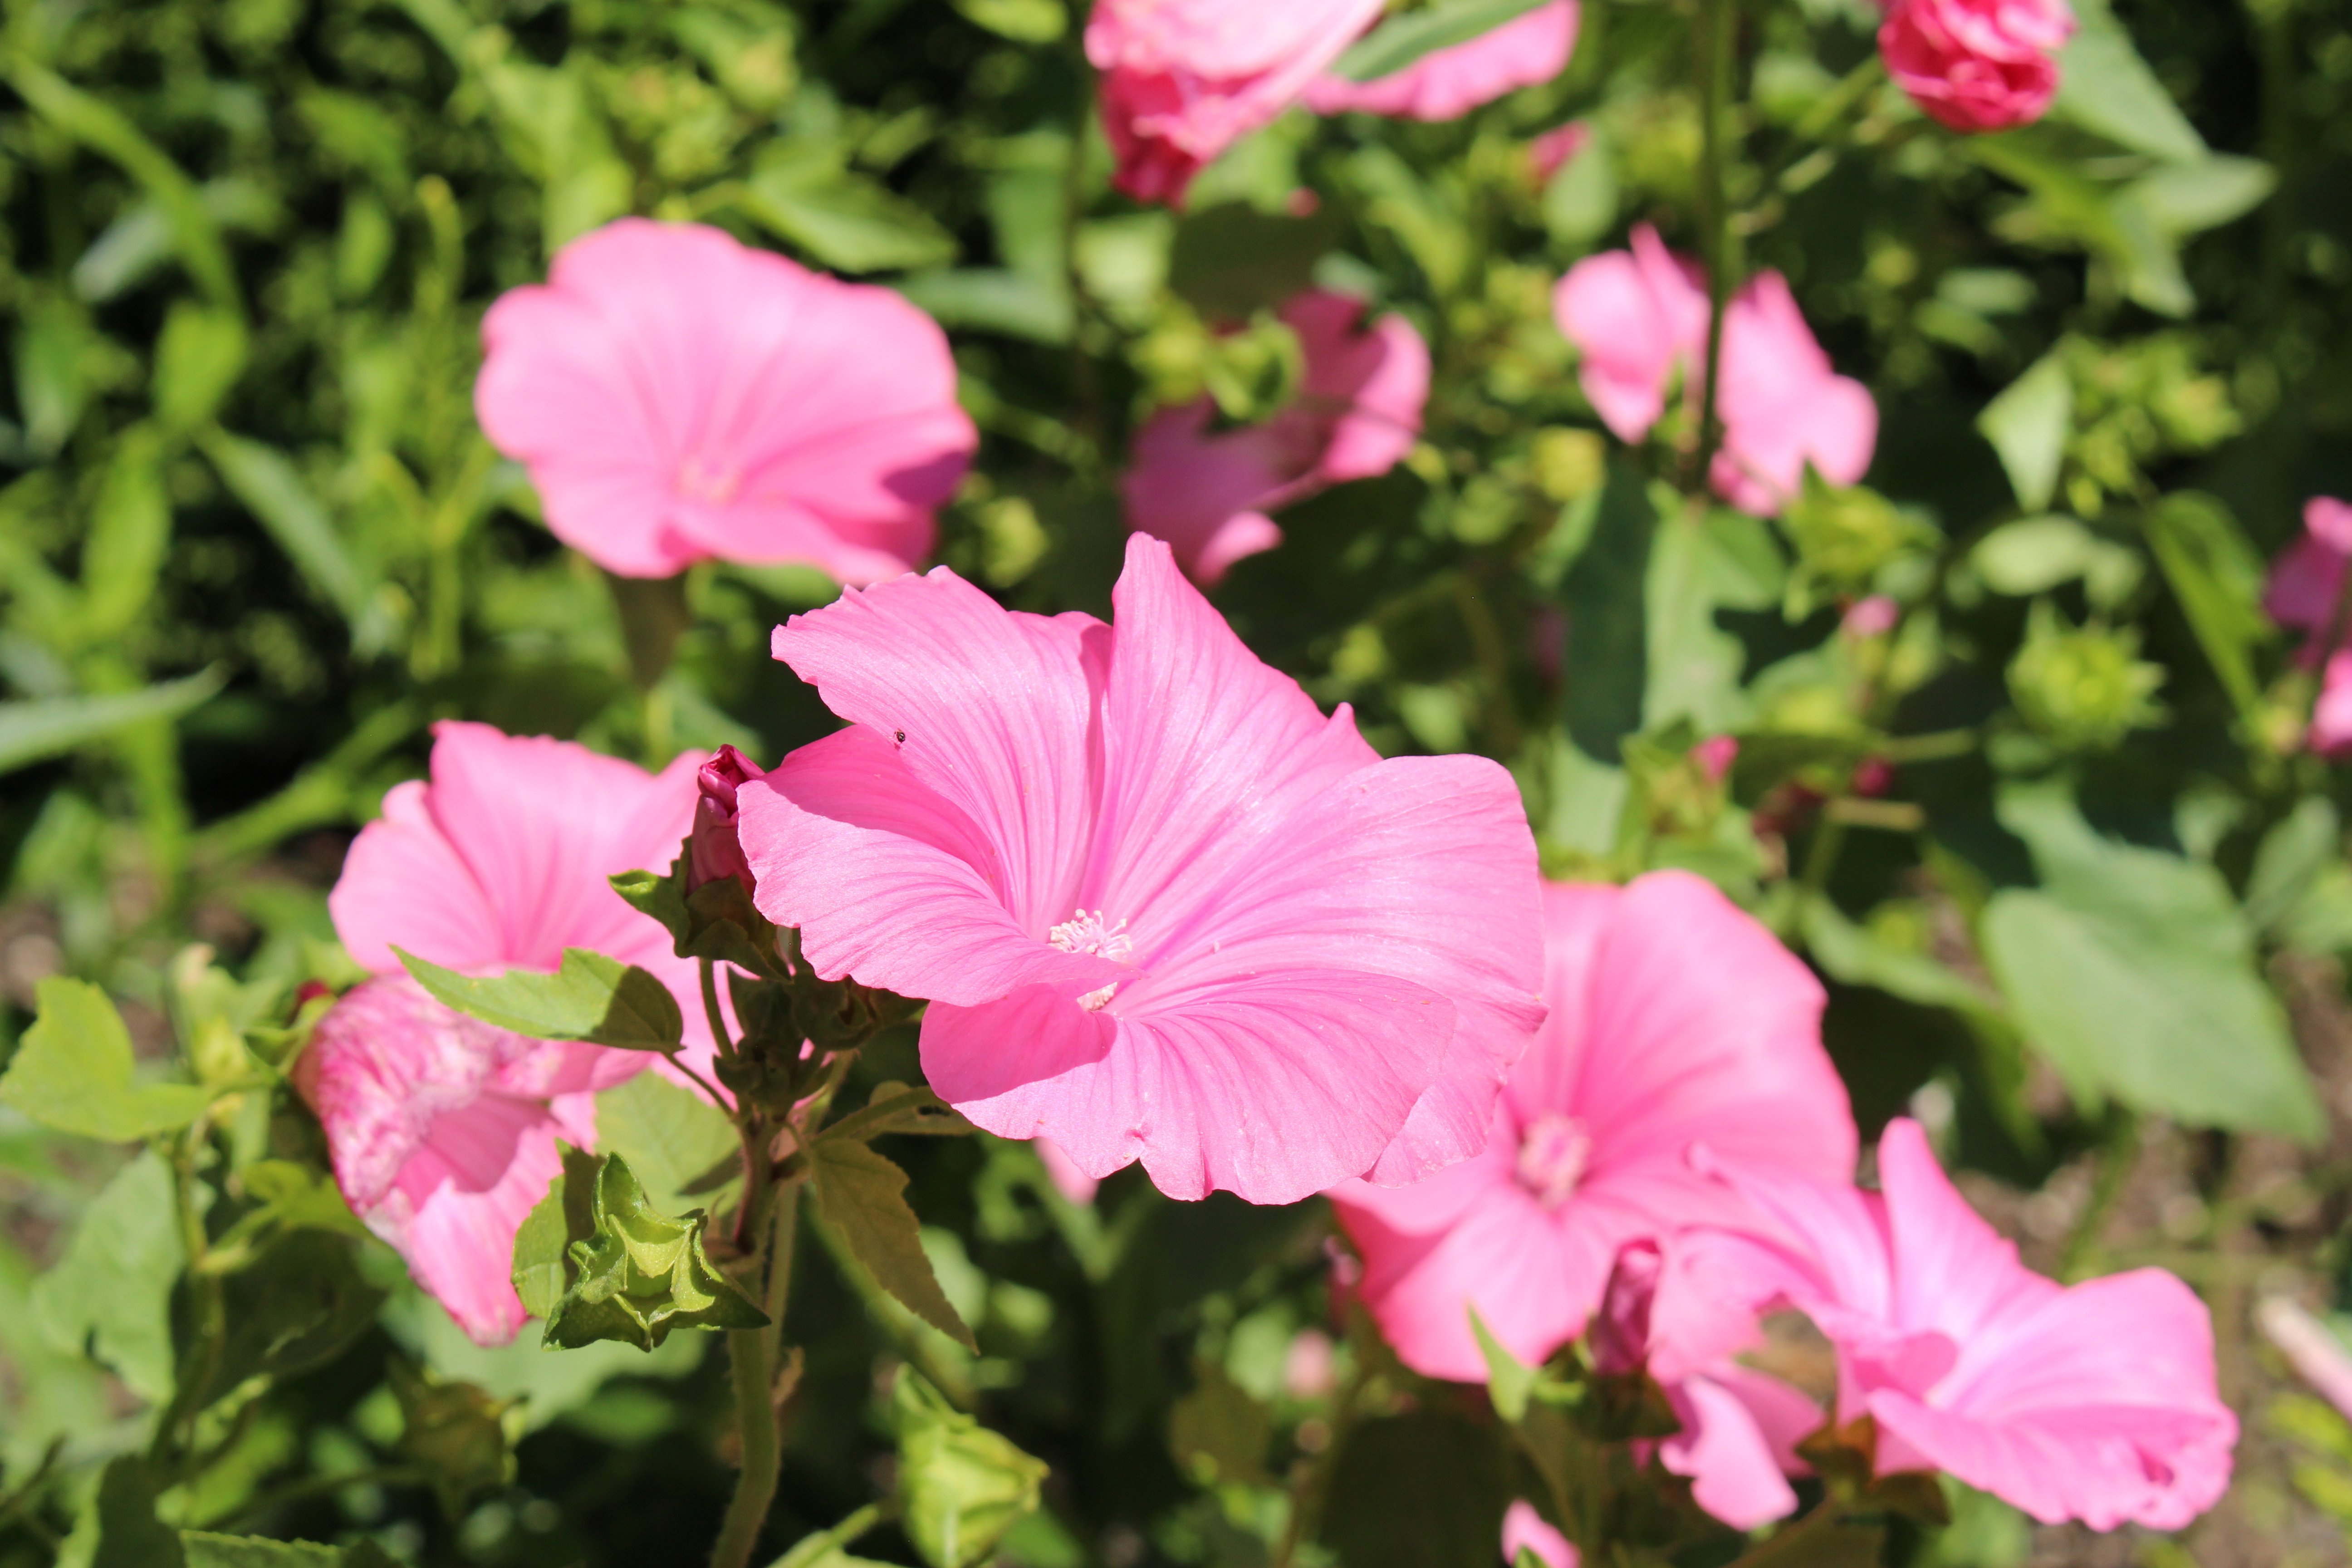 8 Annual mallow (Lavatera trimestris)